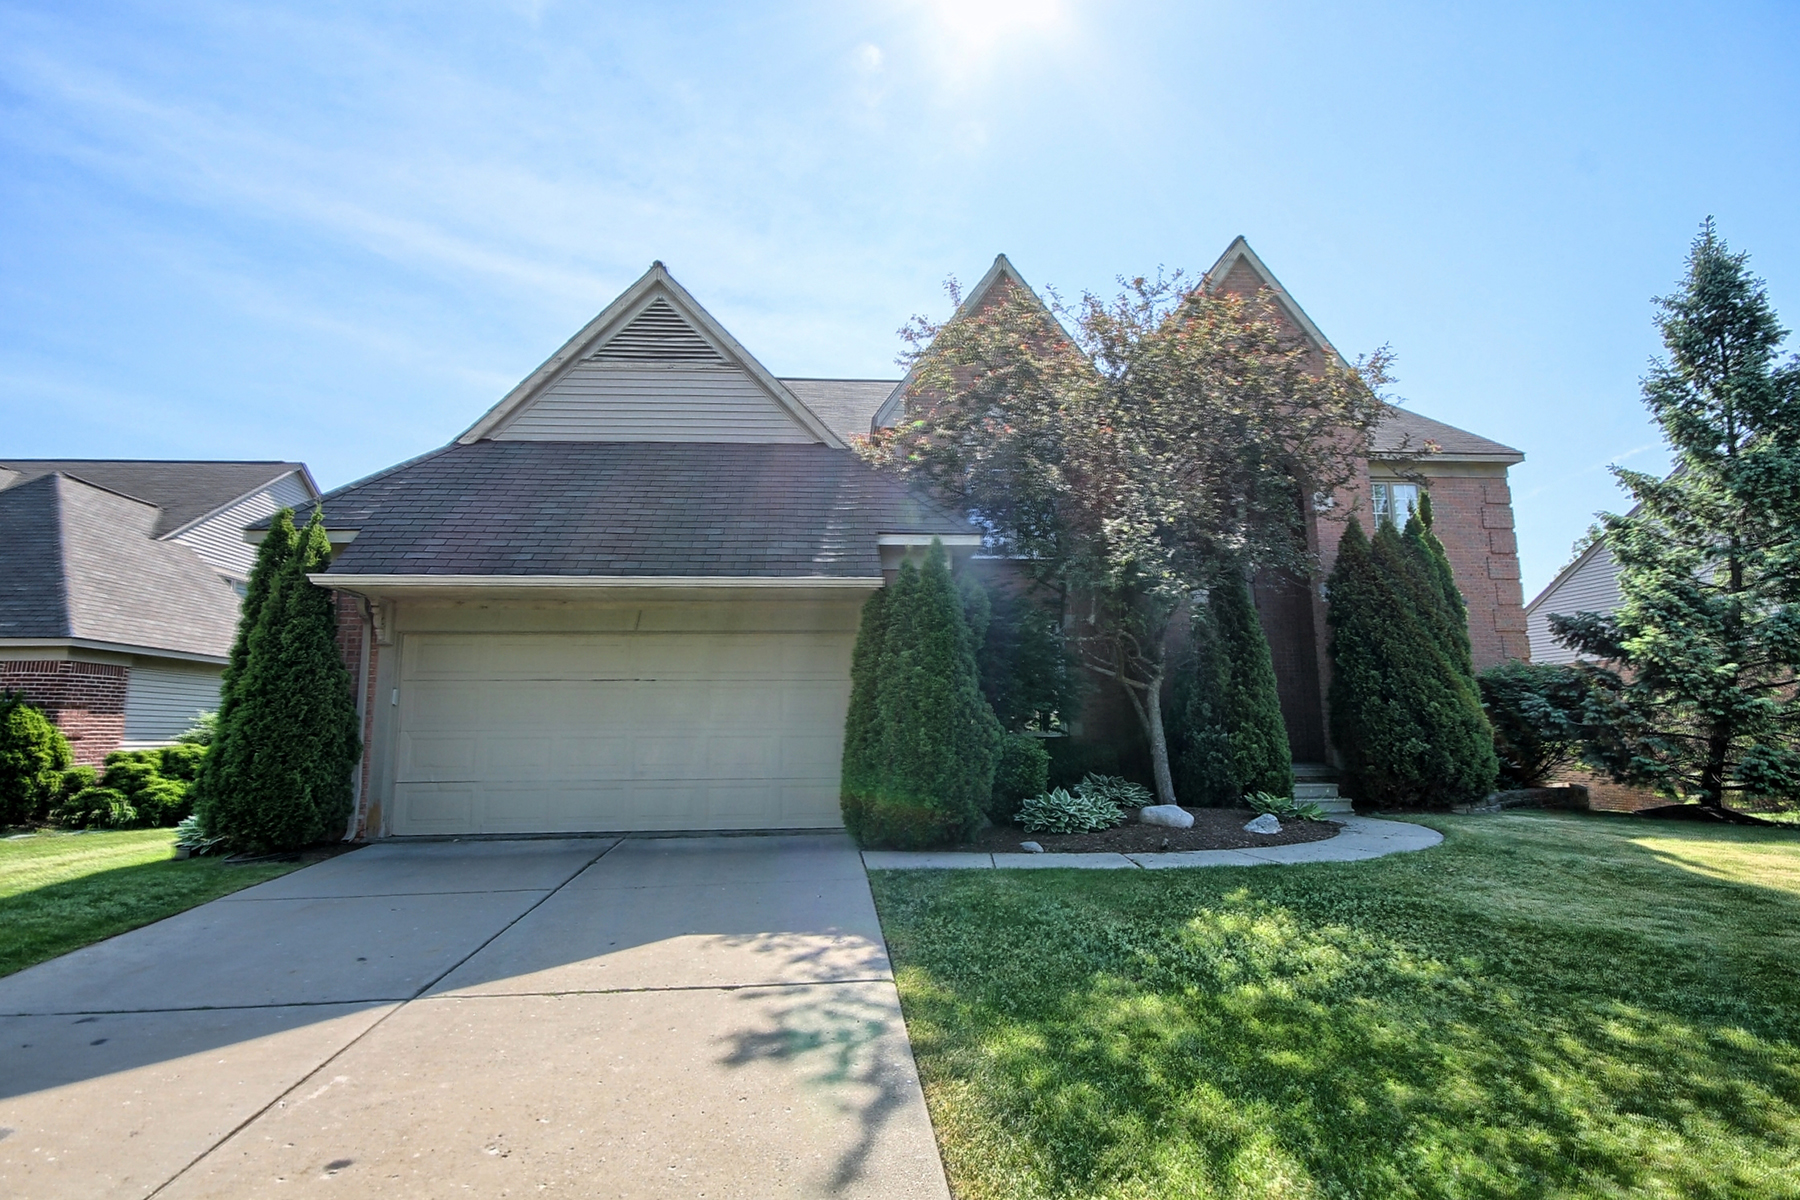 Single Family Home for Sale at West Bloomfield 2137 Timberridge Court West Bloomfield, Michigan, 48324 United States